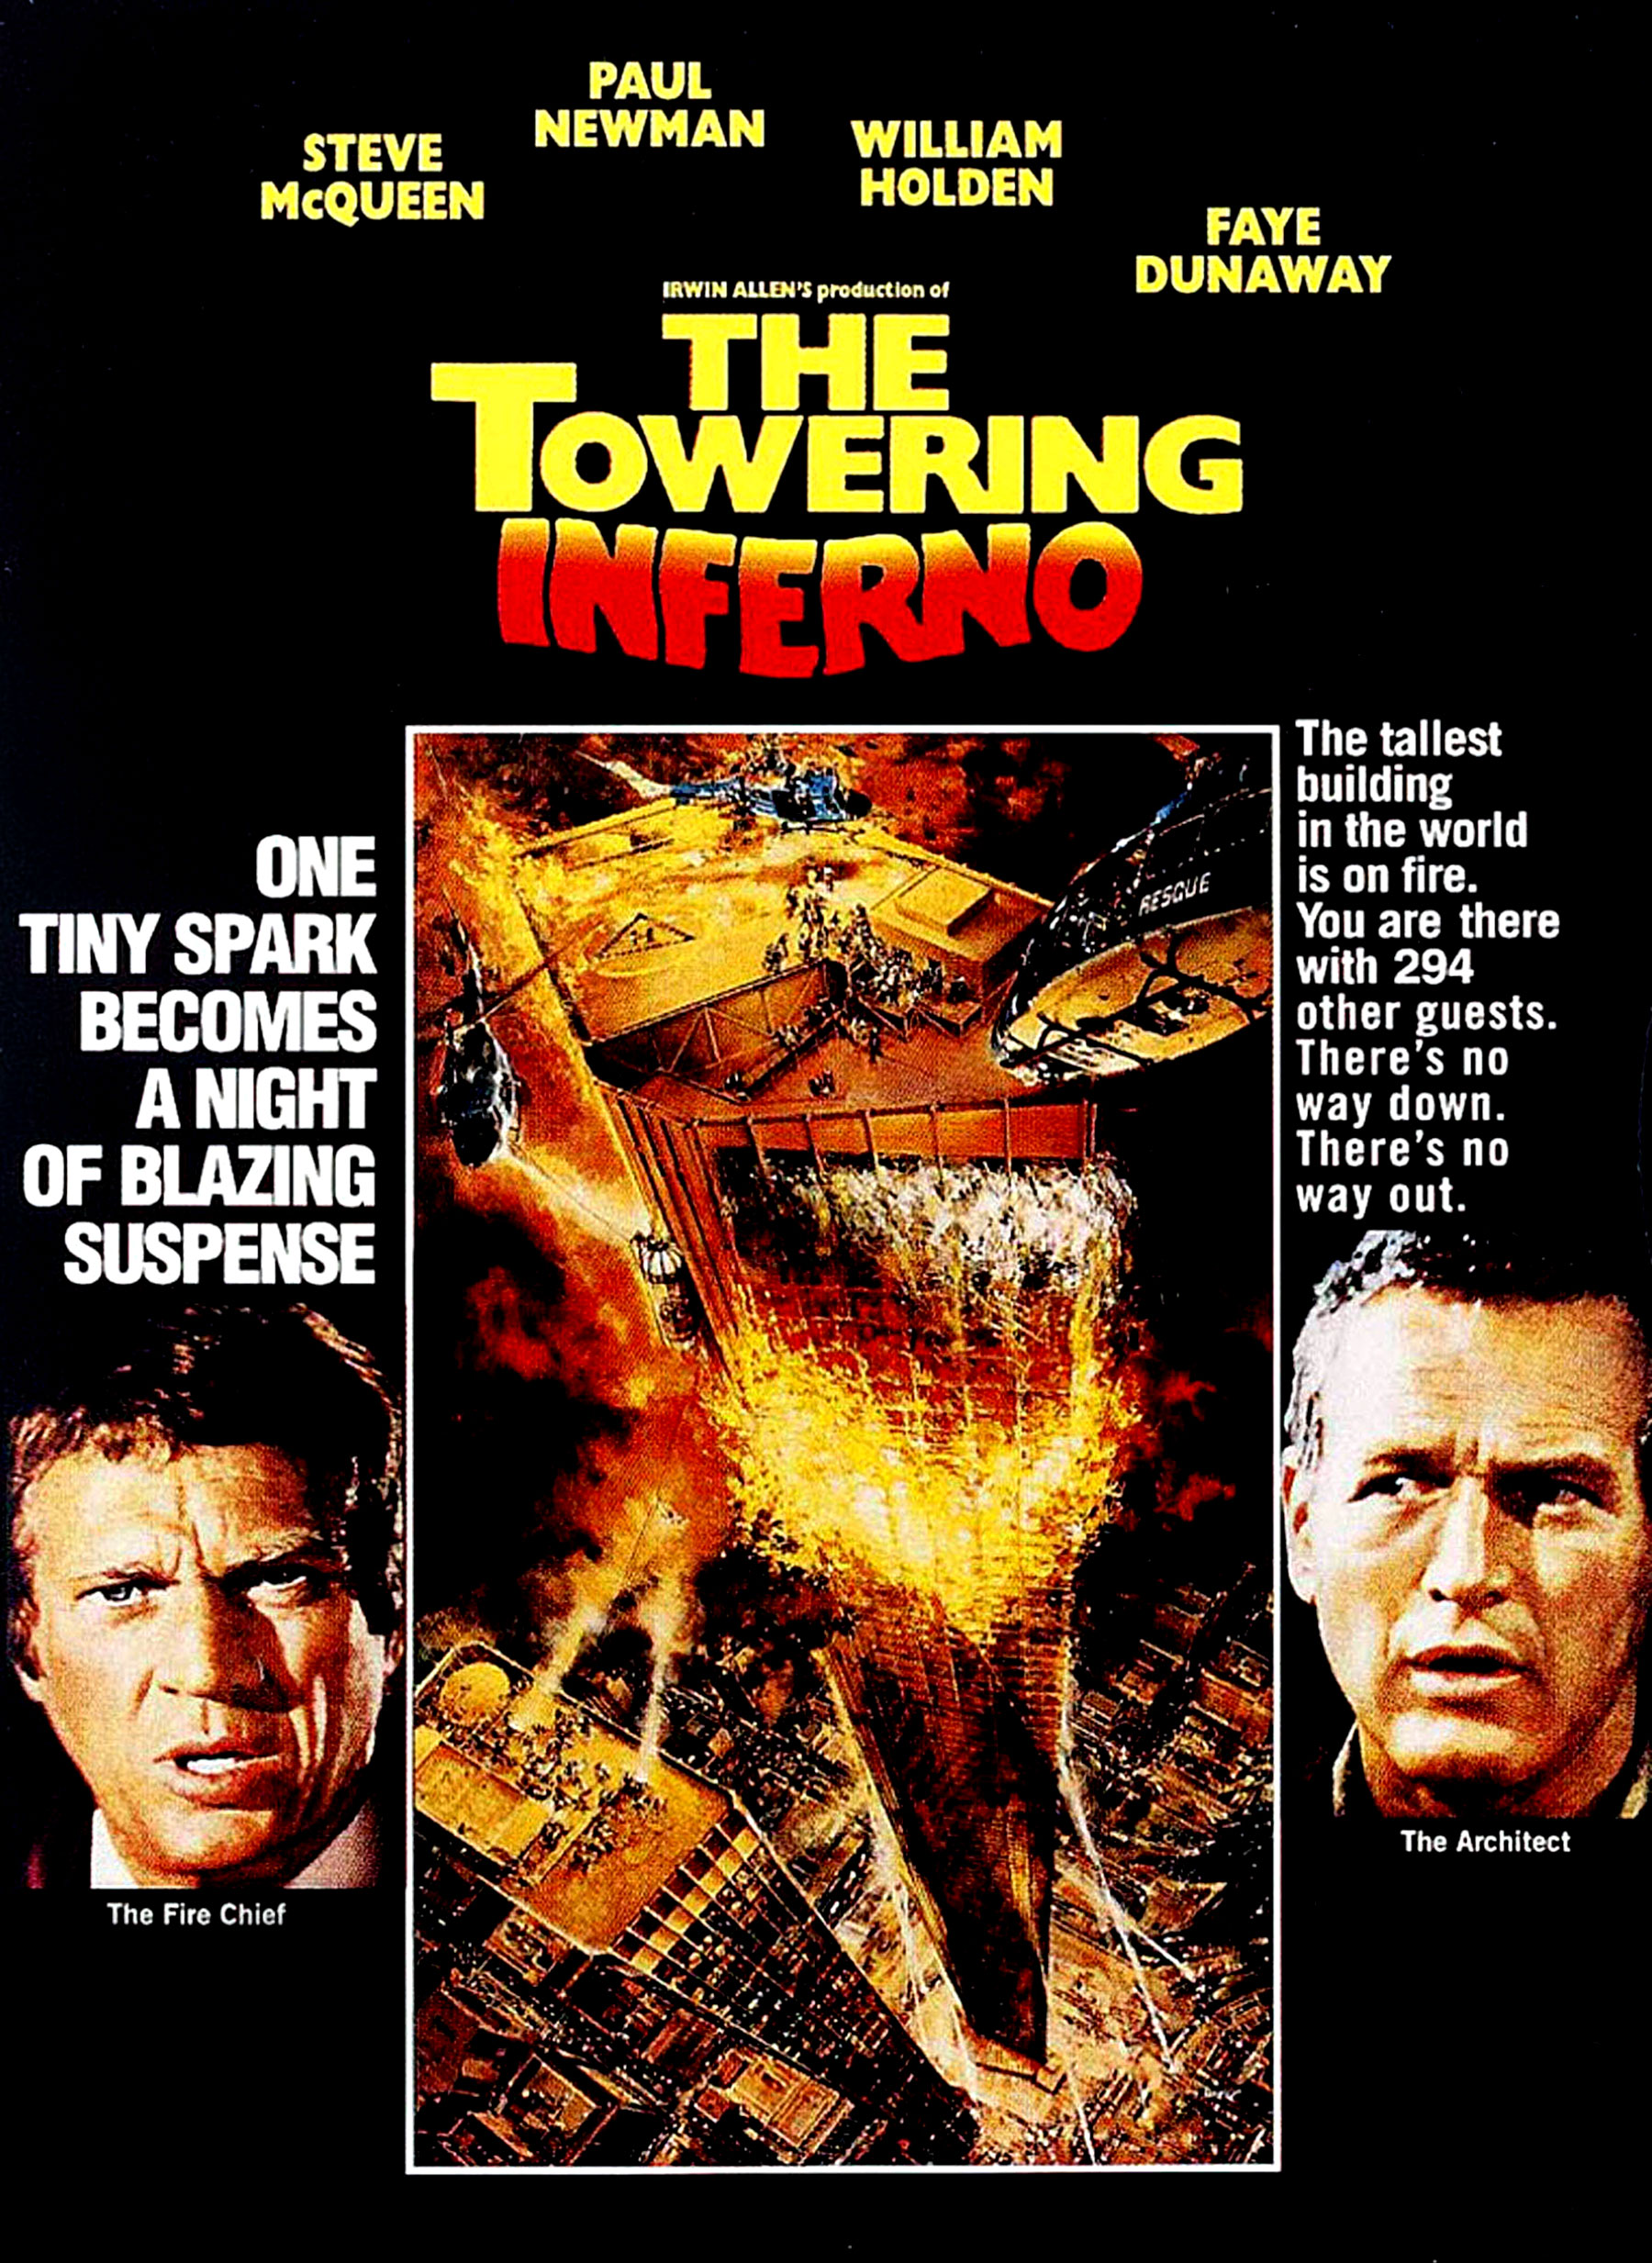 — THE TOWERING INFERNO   Classic 1970s disaster movie about a fire that breaks out in a state-of-the-art San Francisco high-rise building during the opening ceremony attended by a host of A-list guests. An overworked fire chief and the building's architect must cooperate in the struggle to save lives and subdue panic while a corrupt, cost-cutting contractor tries to evade responsibility for the disaster.